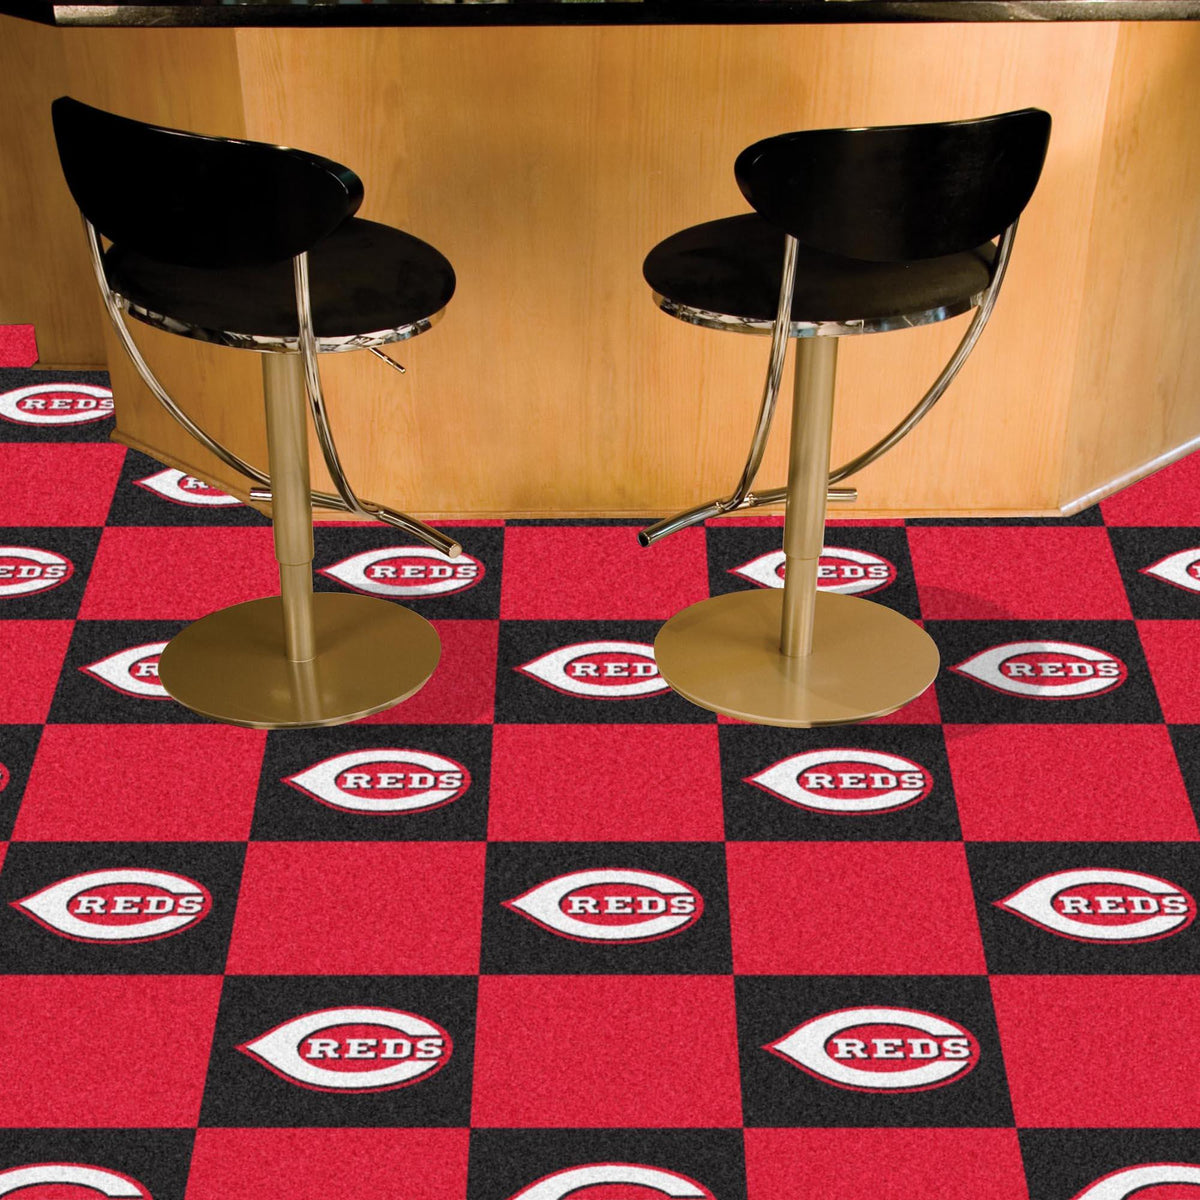 MLB - Team Carpet Tiles MLB Mats, Carpet Tile Flooring, Team Carpet Tiles, MLB, Home Fan Mats Cincinnati Reds